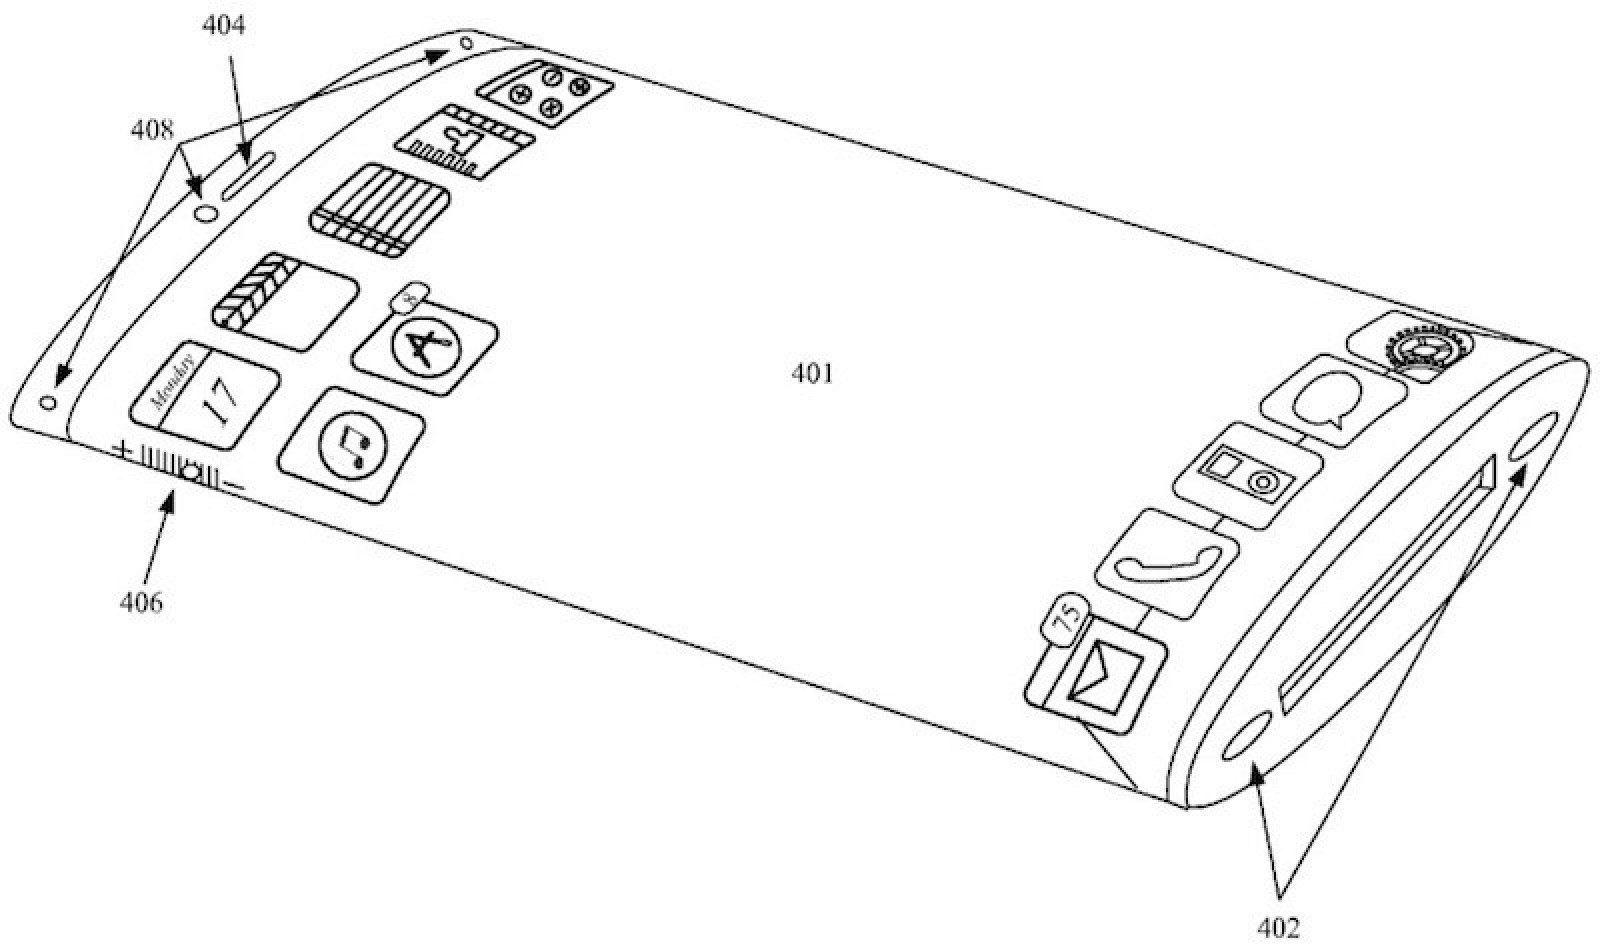 Apple Granted Patent For iPhone With Wraparound All-Glass